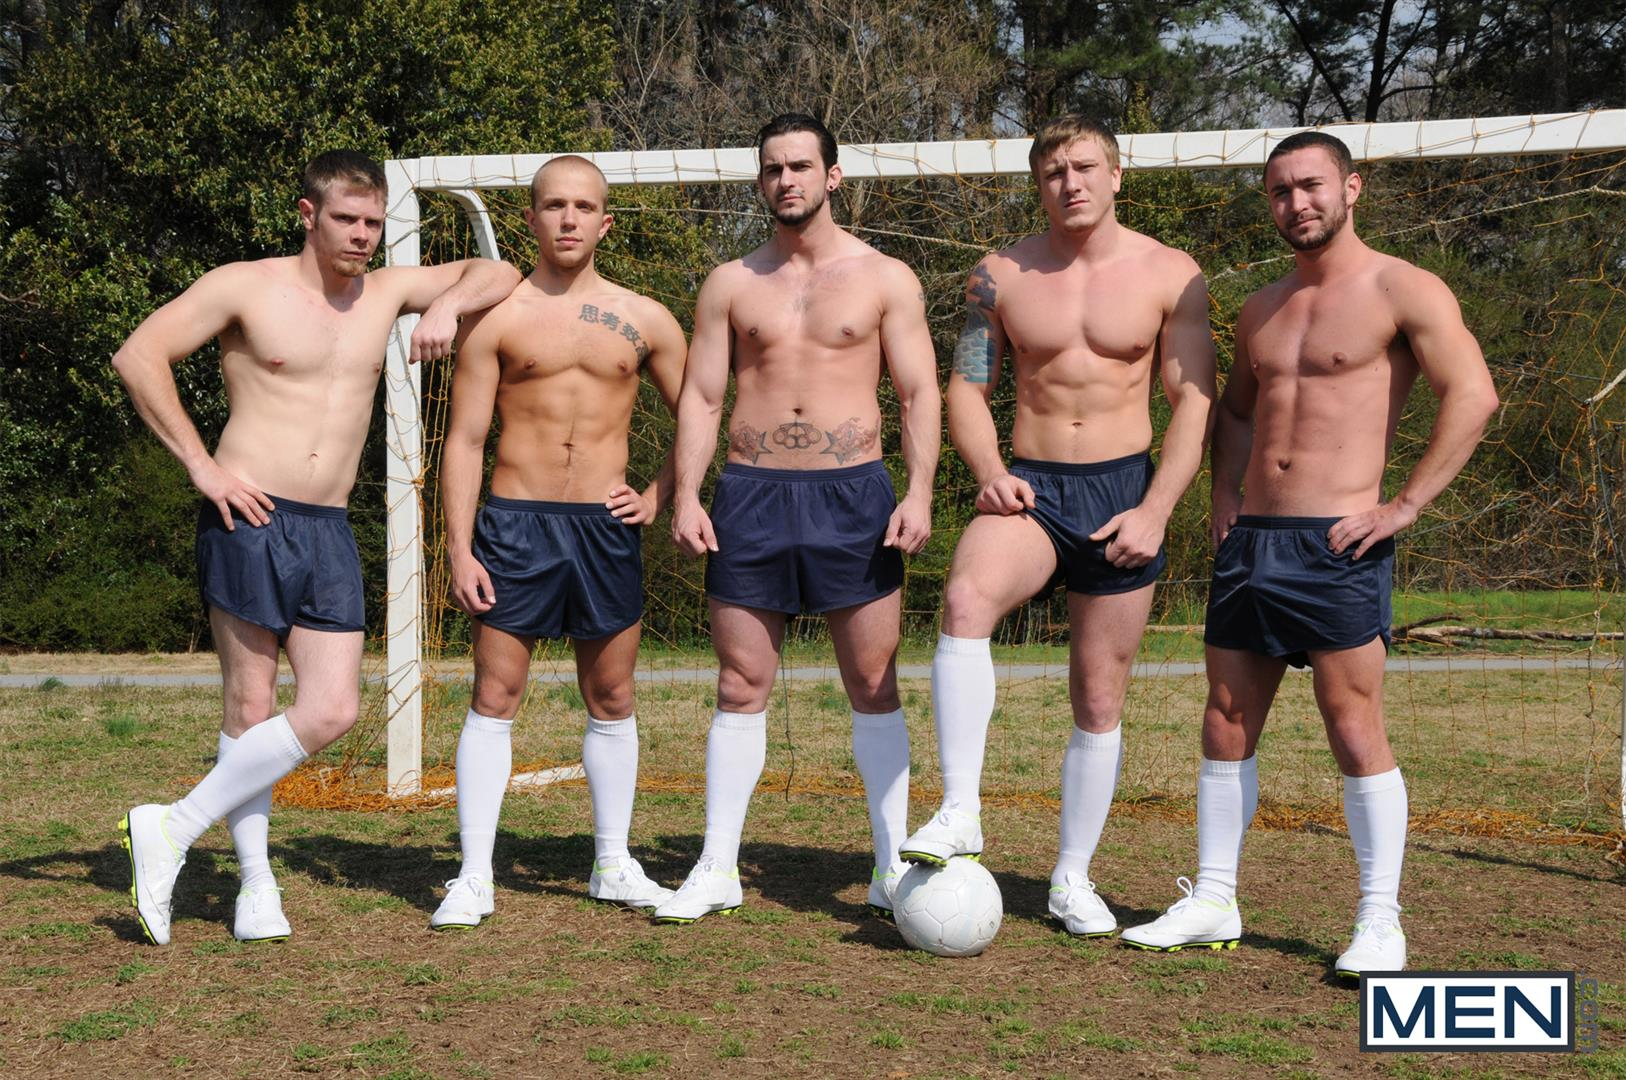 Men-Score-Series-Steve-Stiffer-and-Tom-Faulks-Soccer-Guys-Fucking-Amateur-Gay-Porn-02 It's World Cup Time!  Hunky Soccer Players Fucking After The Game